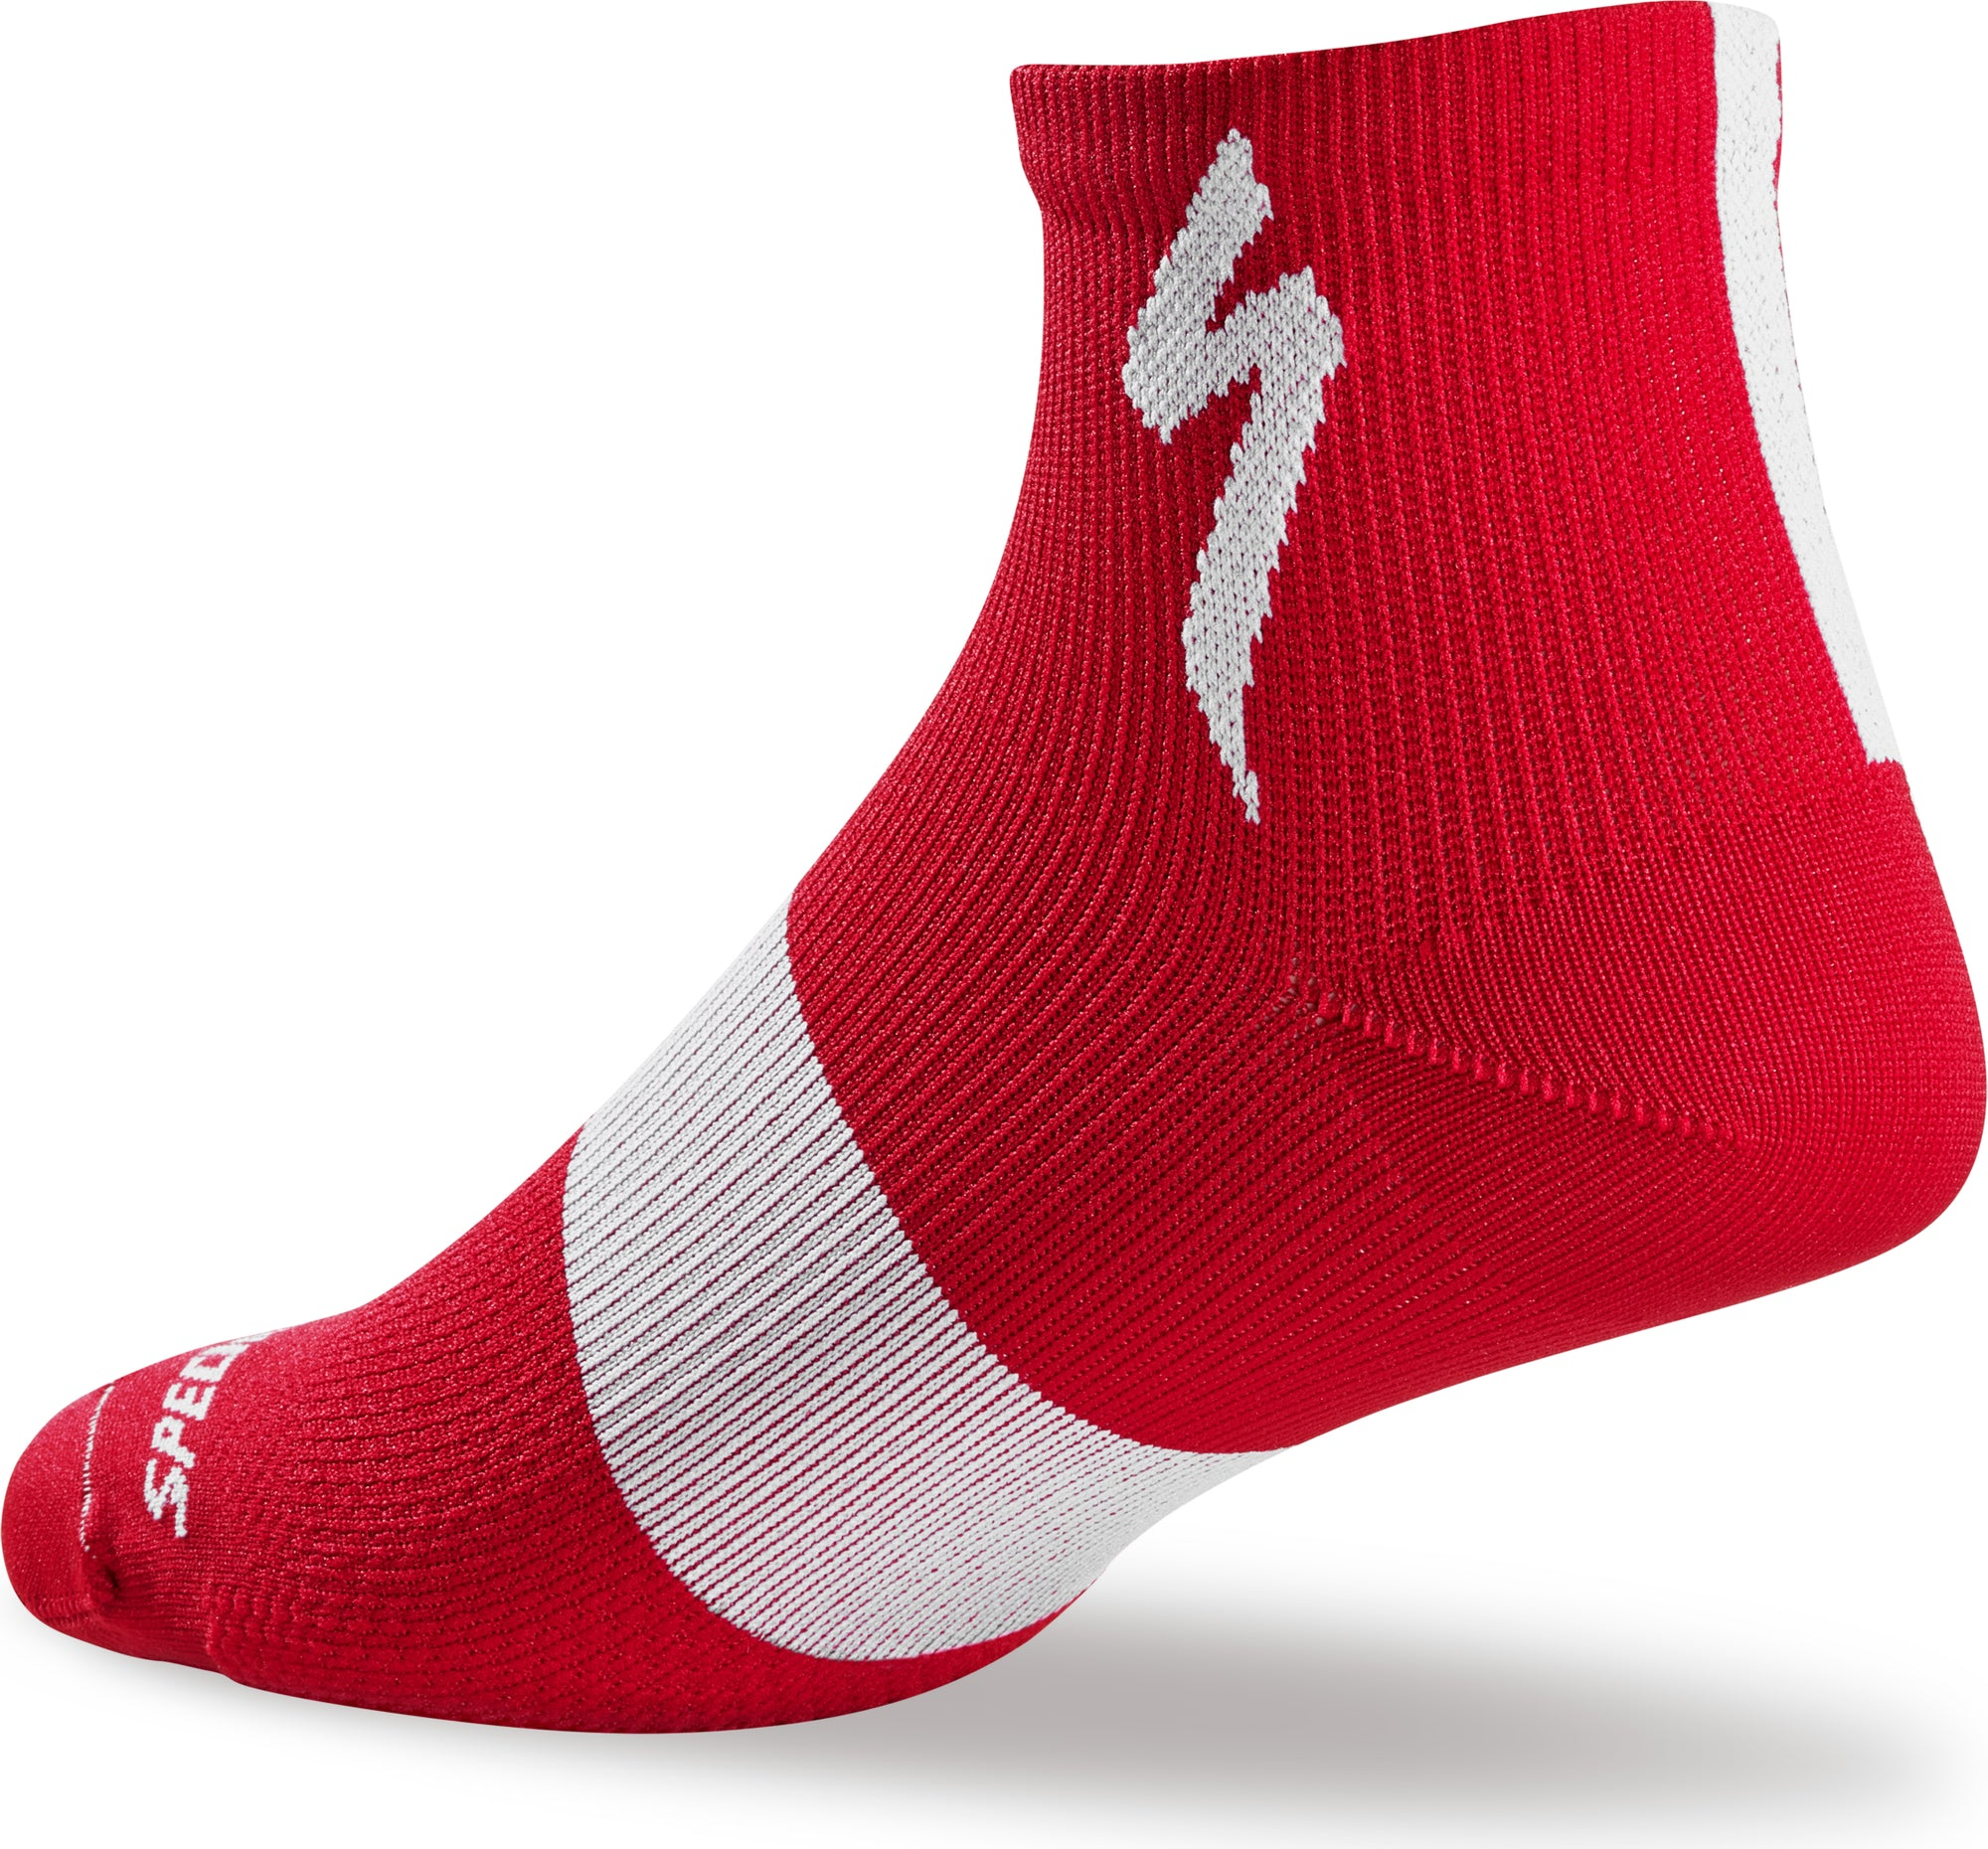 Women's SL Mid Socks